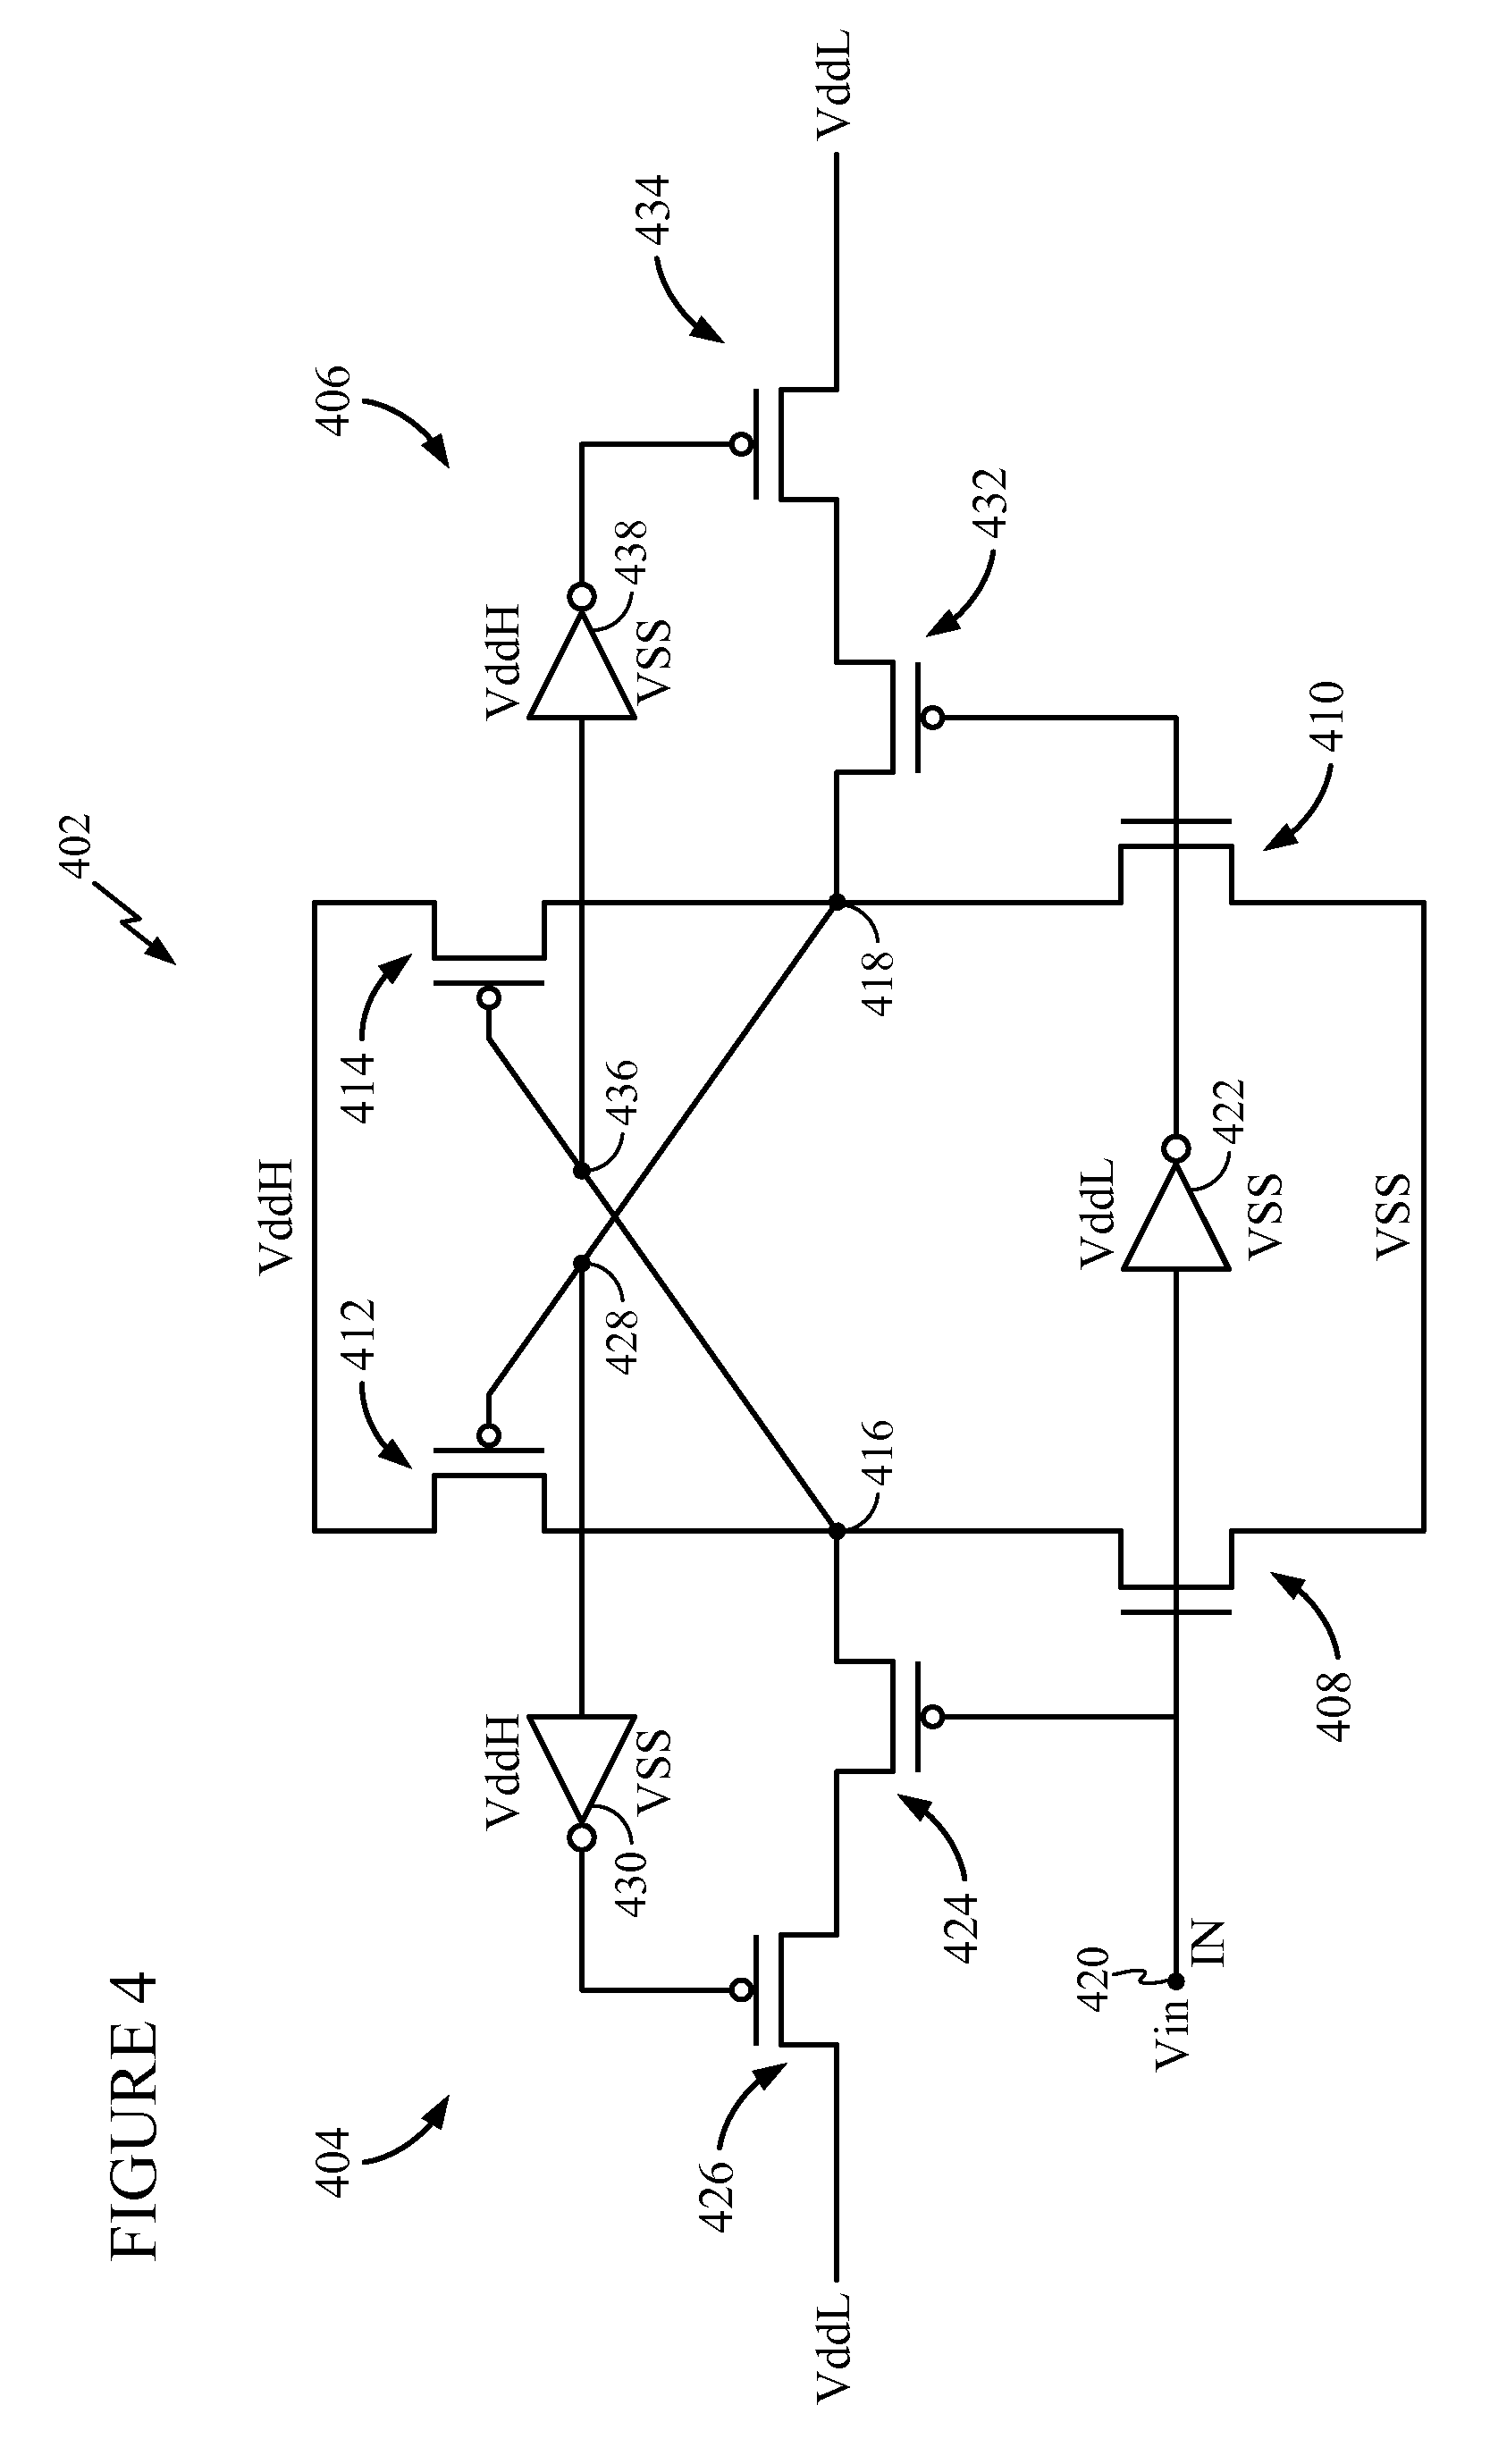 patent us7710183 - cmos level shifter circuit design